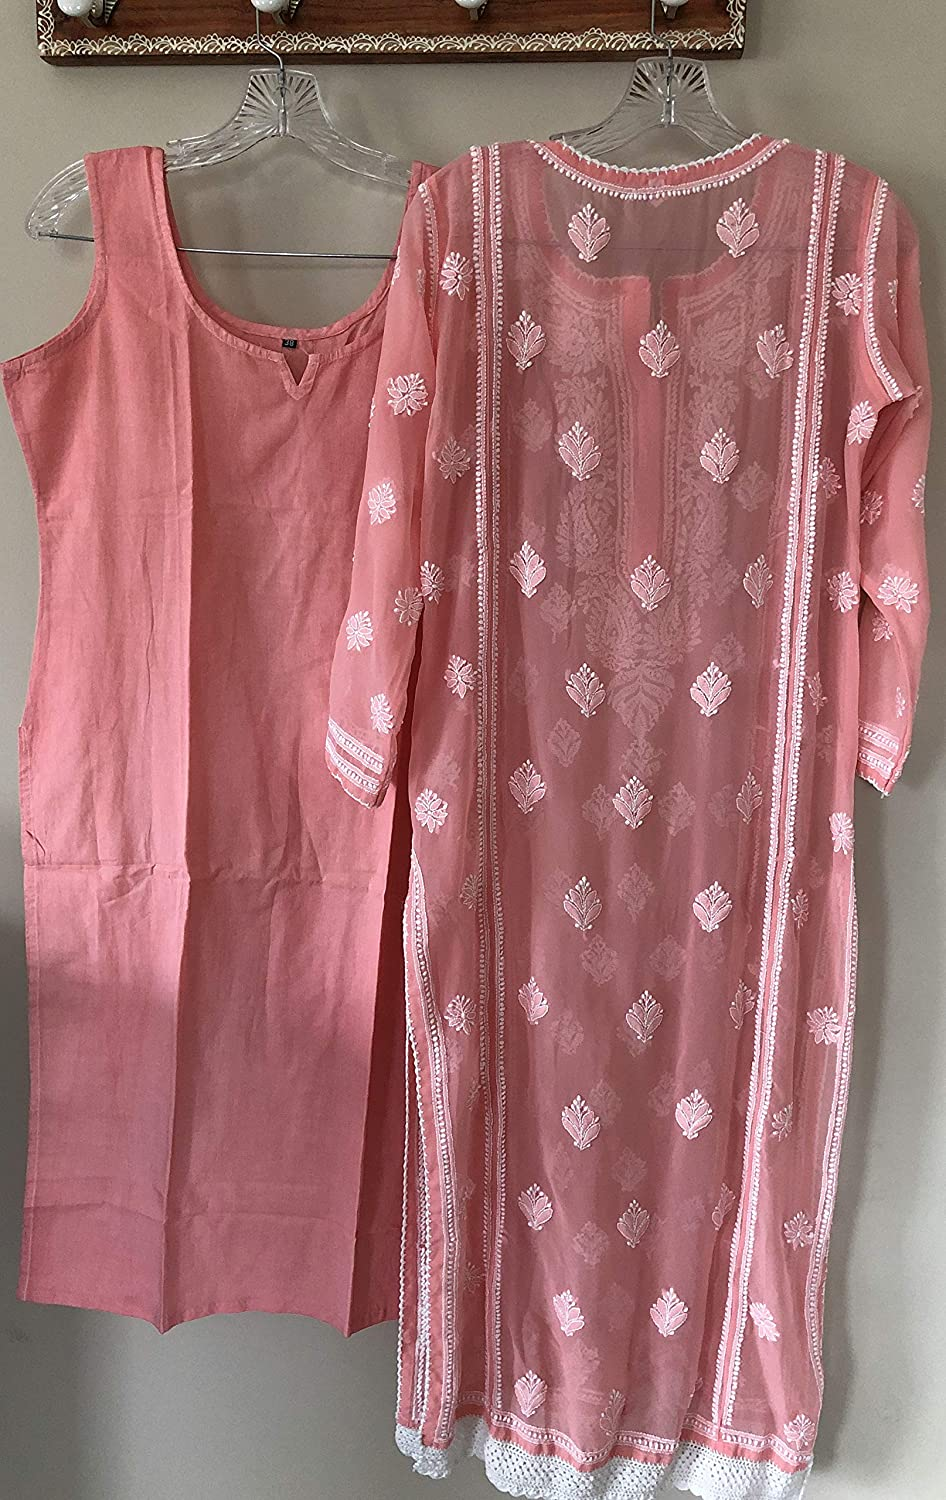 Lucknow Chikankari Suit//Peach Georgette Kurta with Cotton Embroidered Pants//Size Small for bust size 34 inches 38